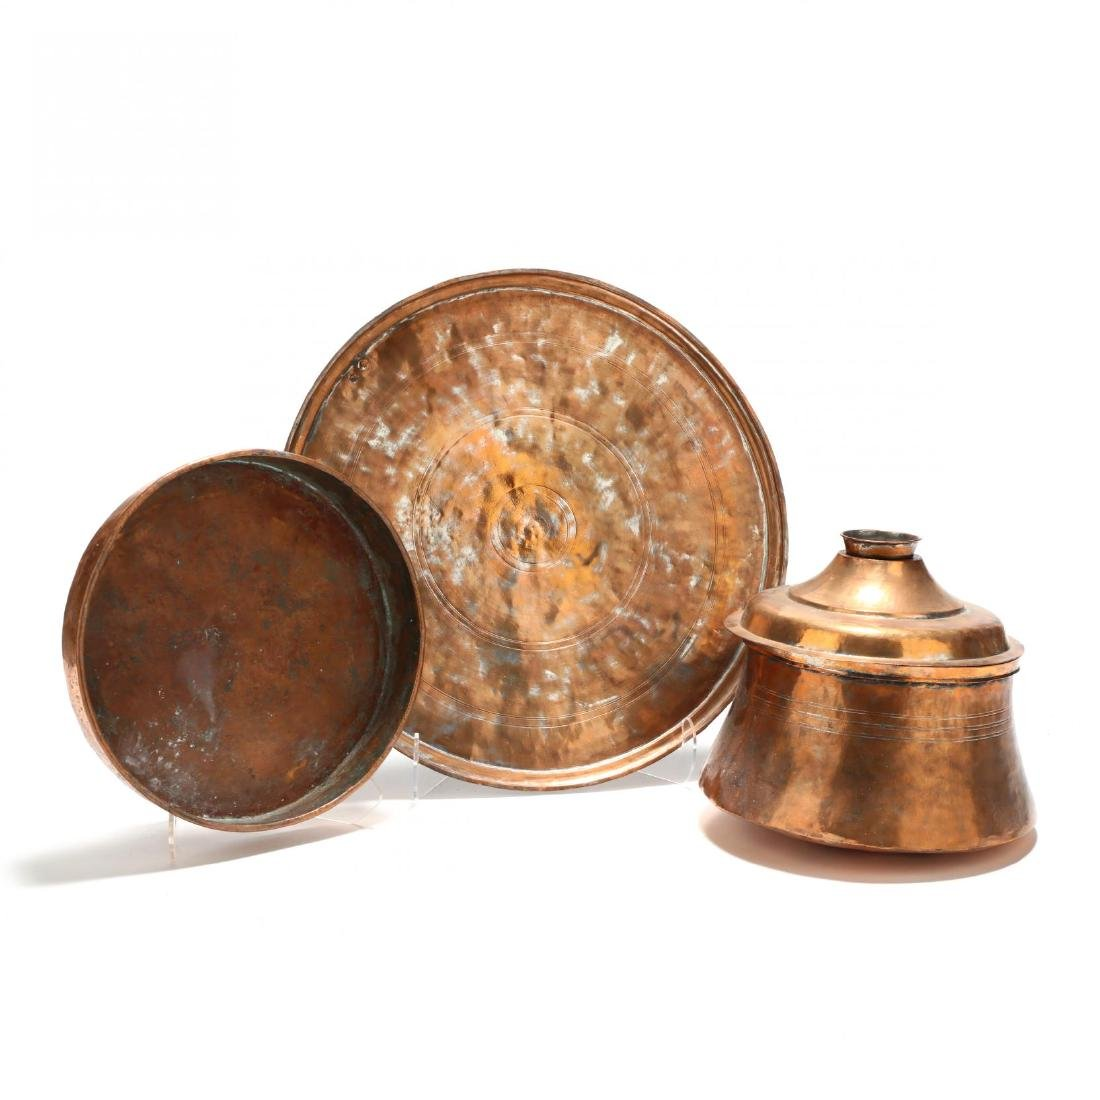 Three Pieces of Large Copper Kitchenware